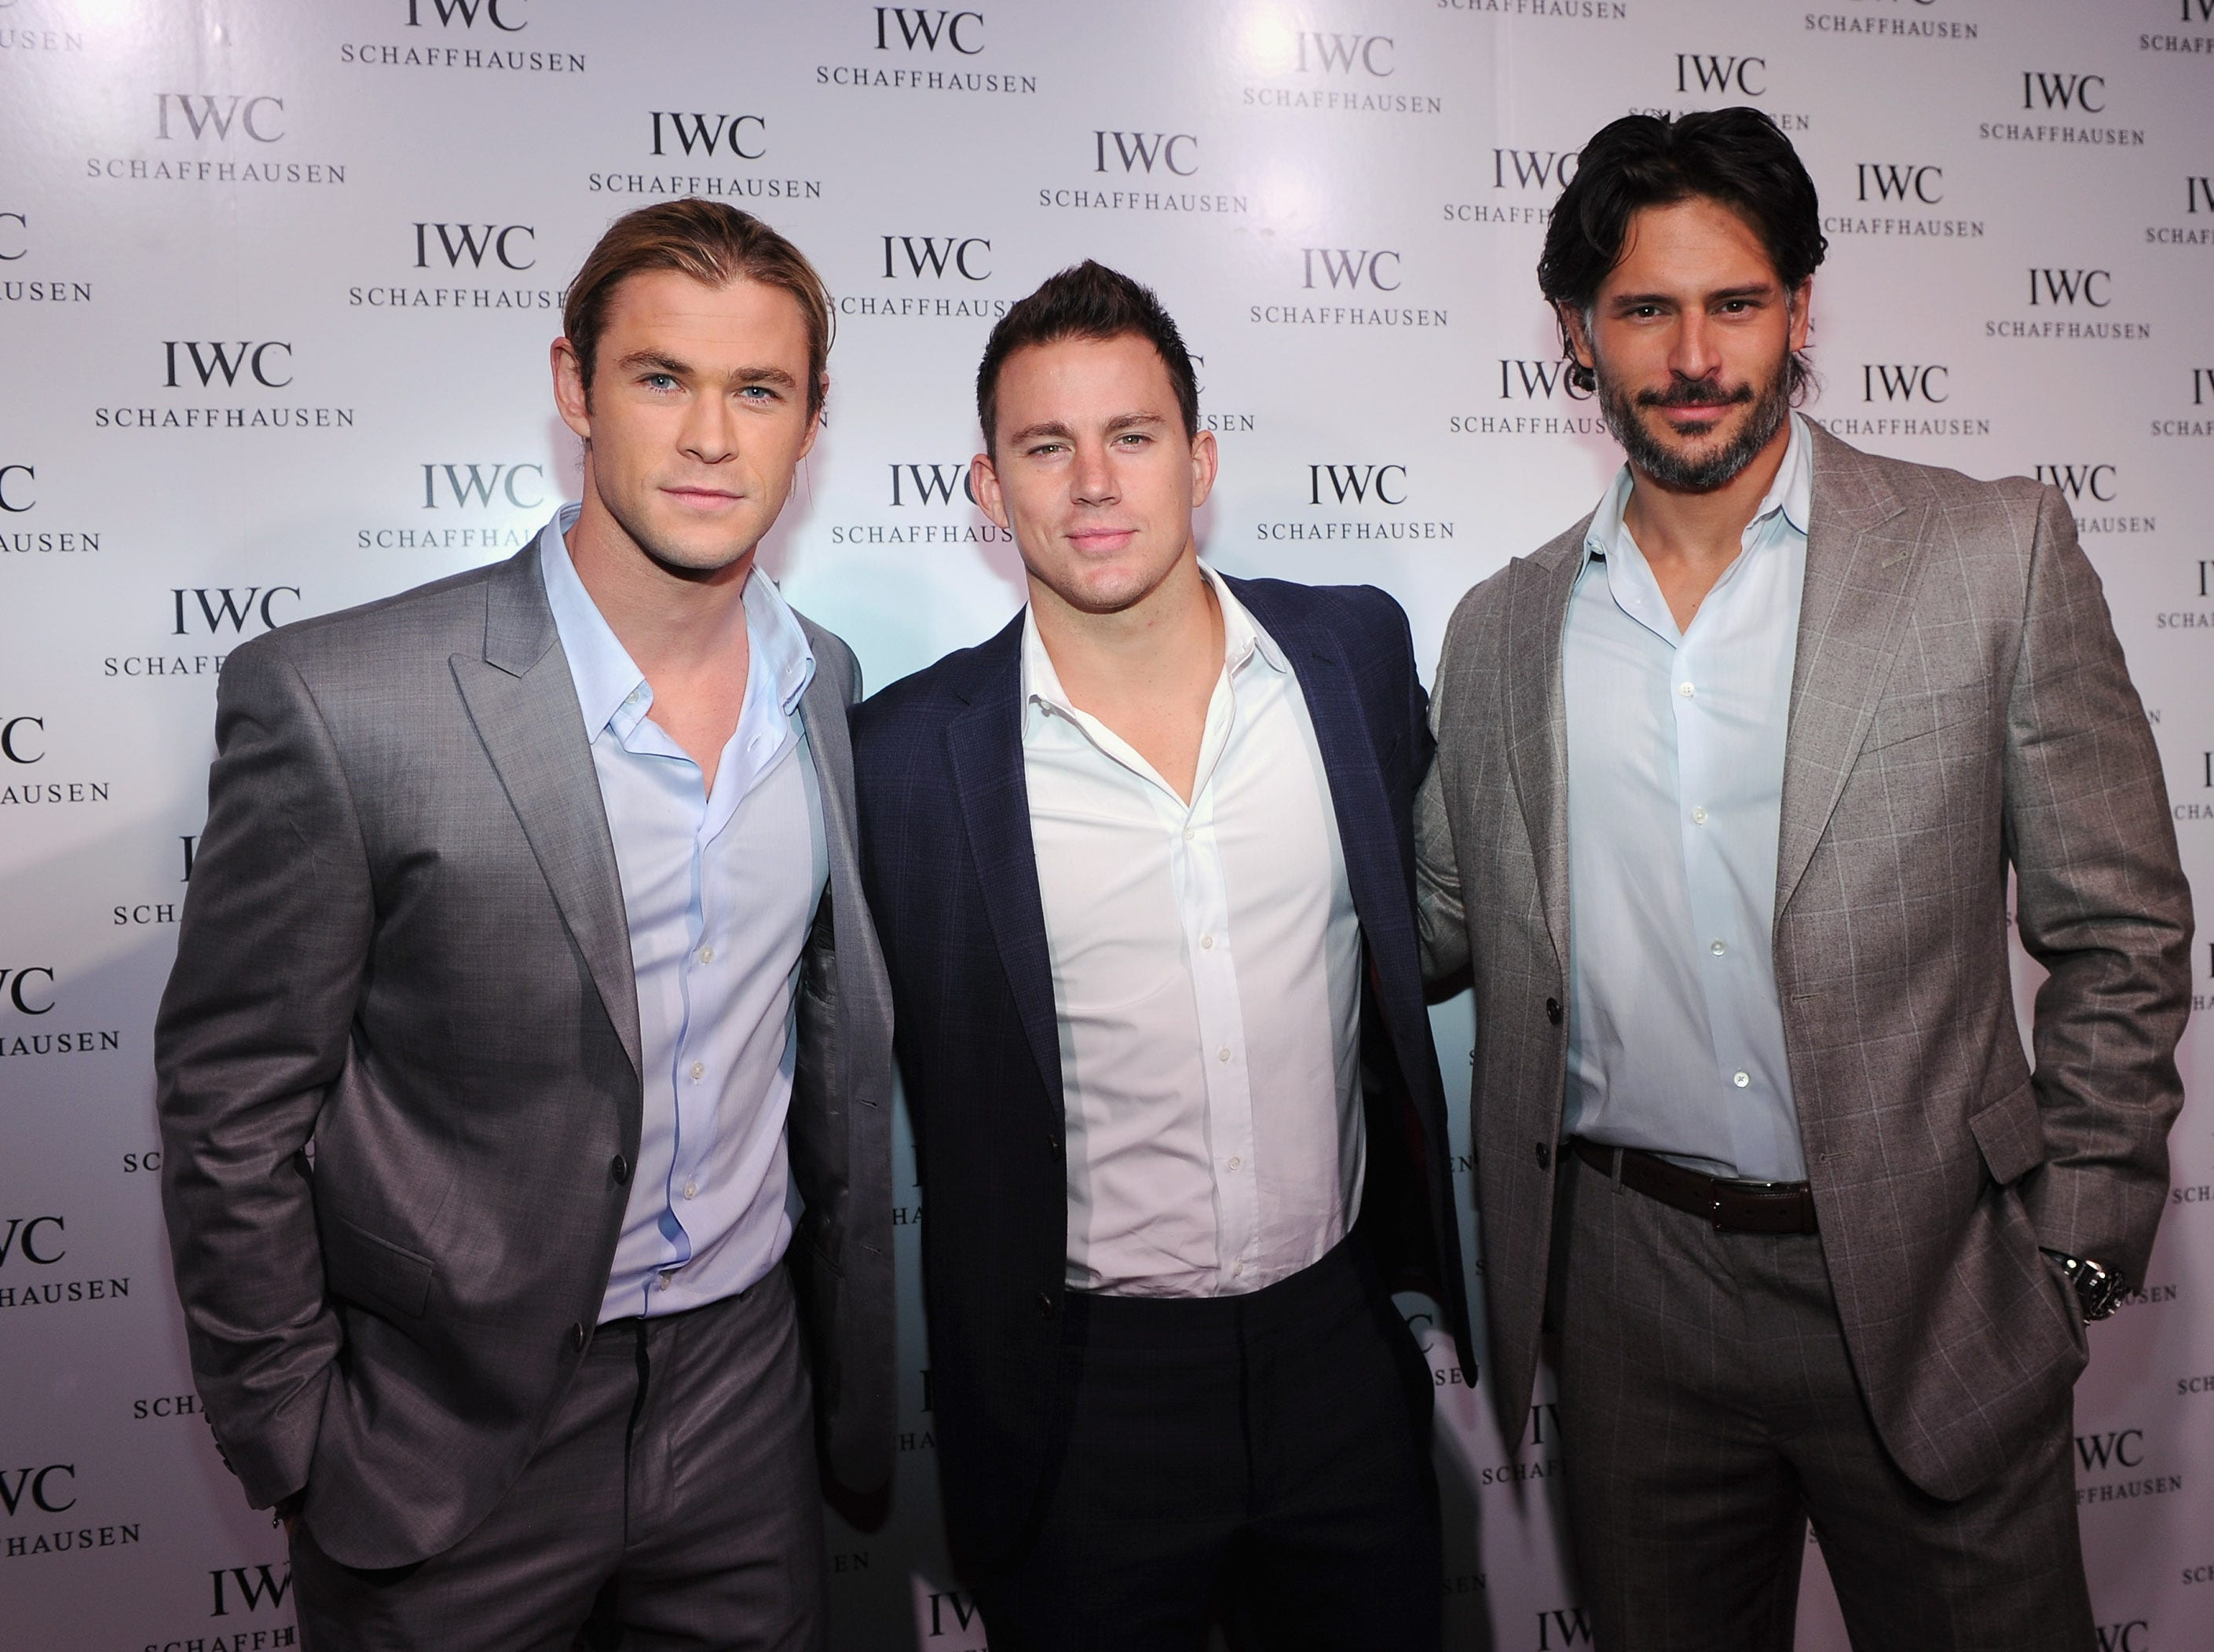 ORG XMIT: 143455482 NEW YORK, NY - APRIL 25:  (L-R) Actors Chris Hemsworth, Channing Tatum and Joe Manganiello attend the IWC Flagship Boutique New York City Grand Opening at IWC Boutique on April 25, 2012 in New York City.  (Photo by Larry Busacca/Getty Images for IWC) ORIG FILE ID: 143400155